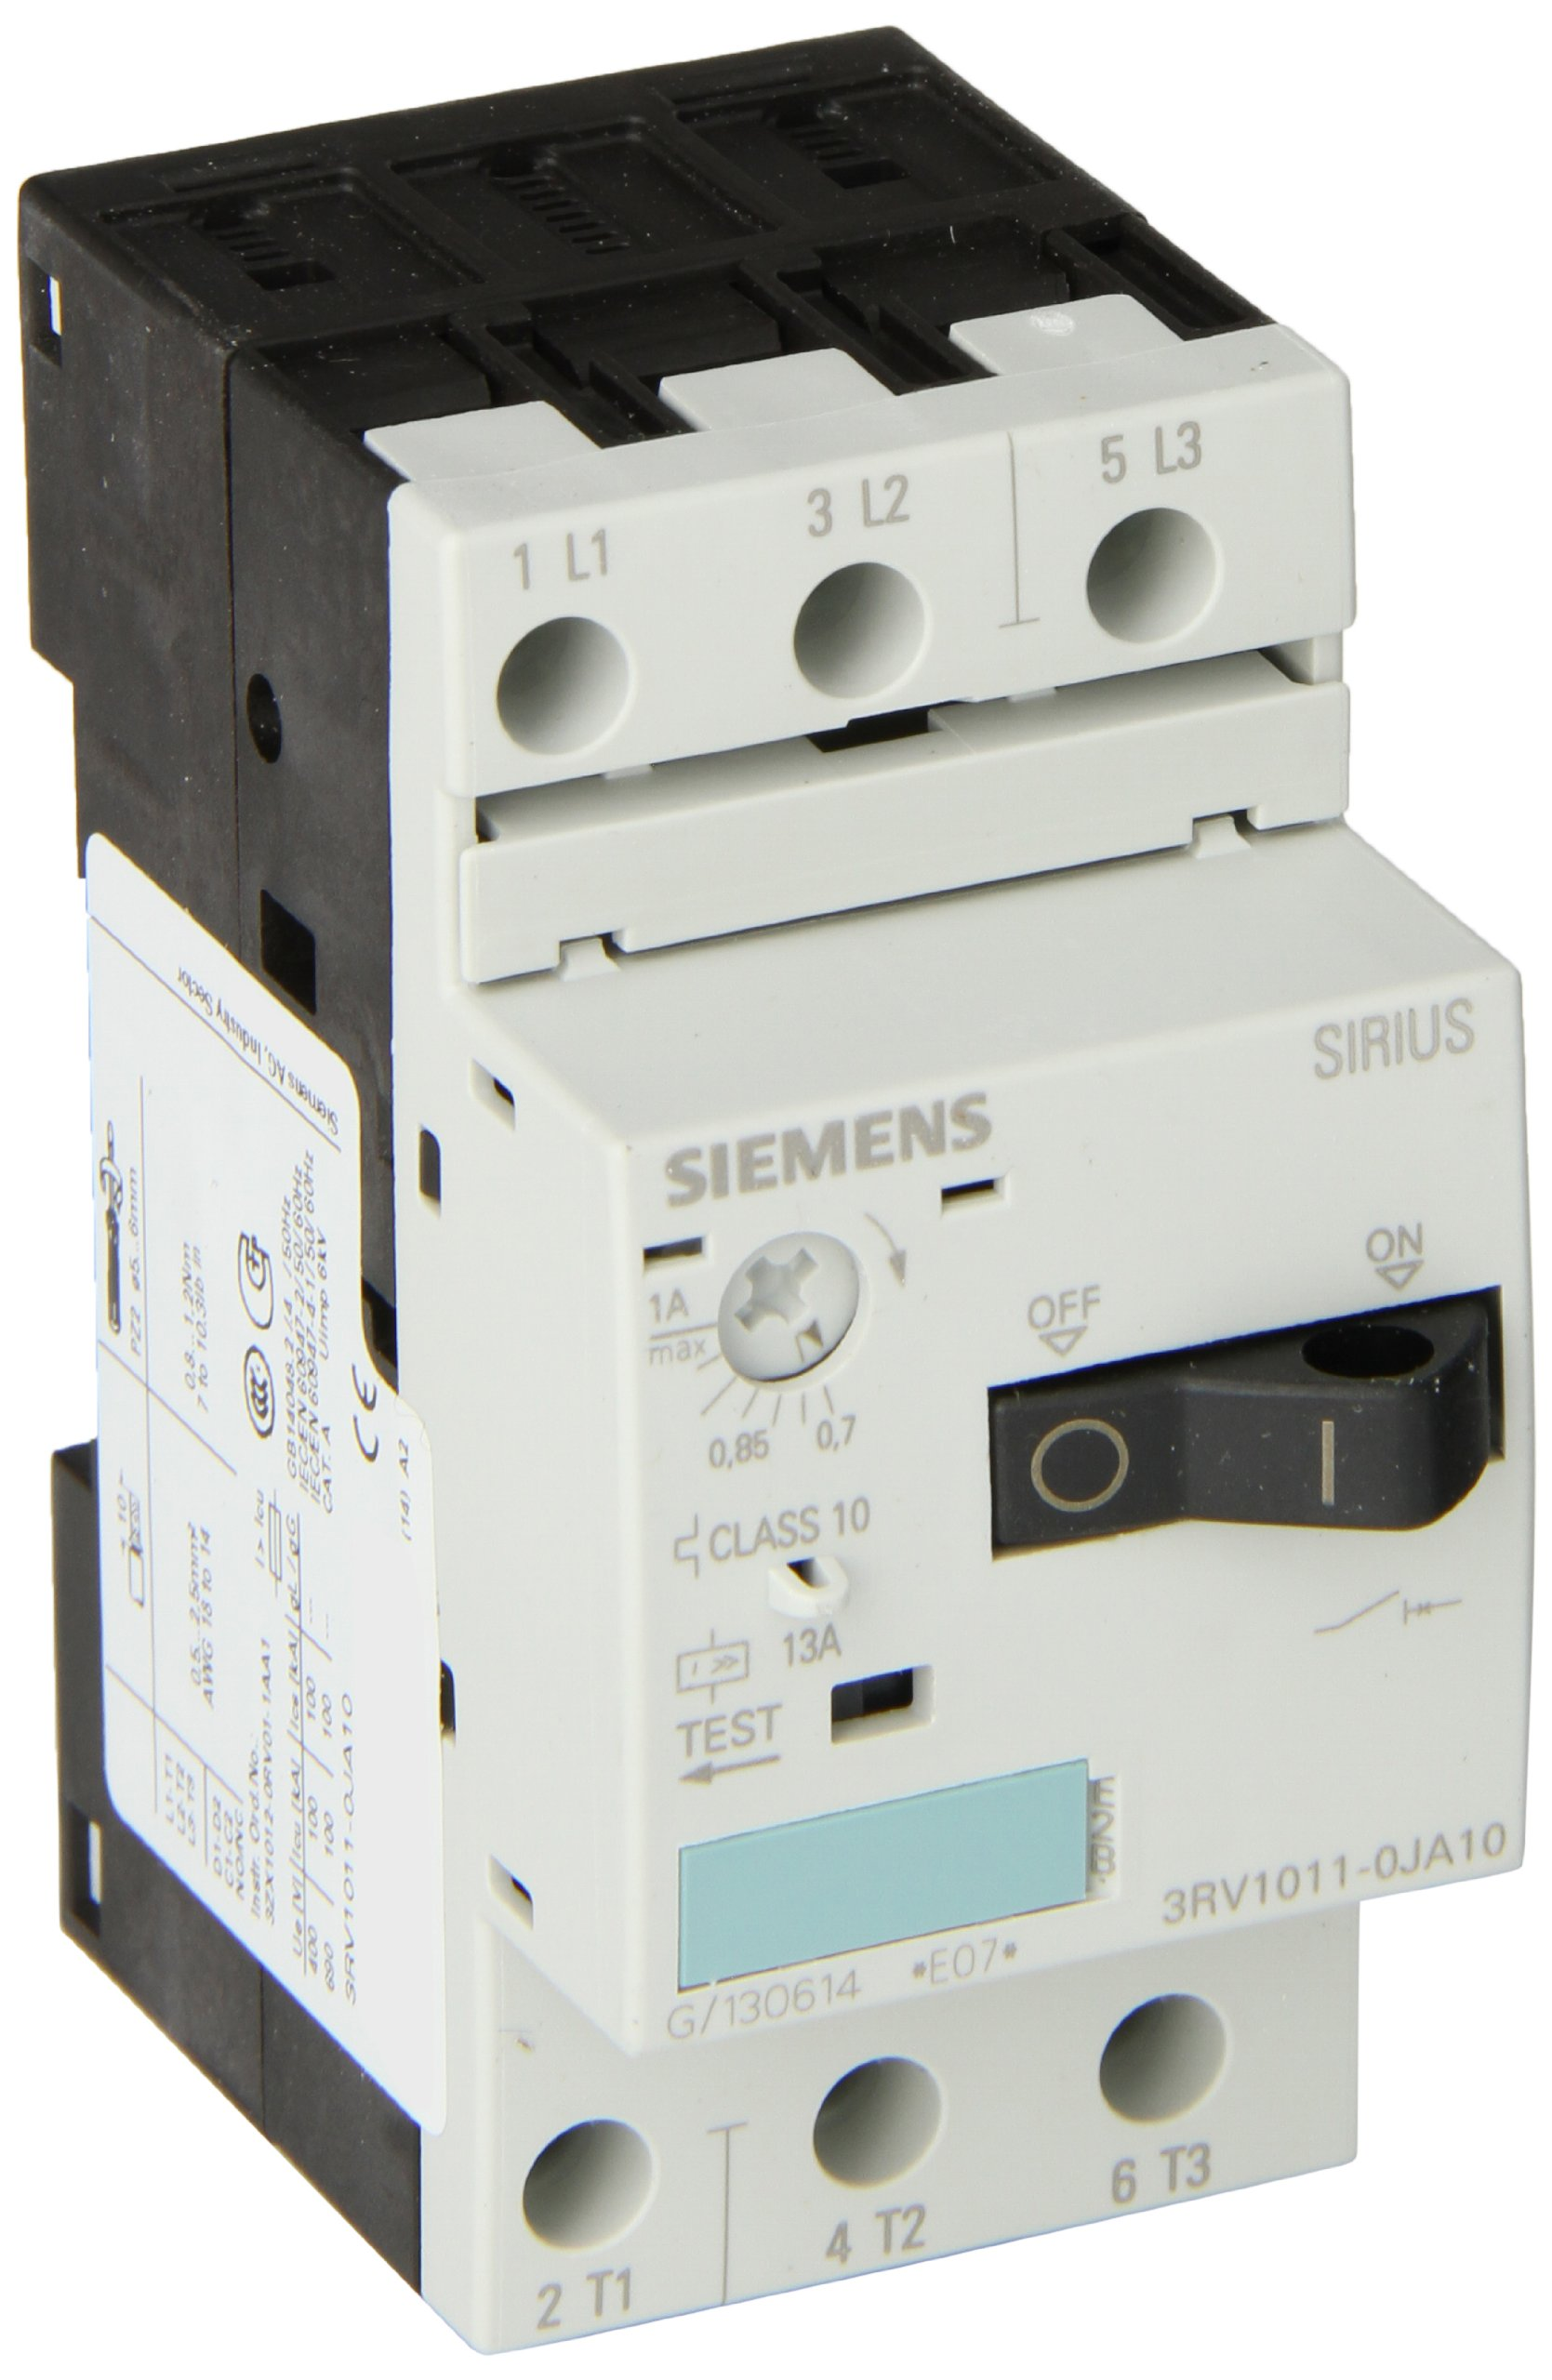 Siemens 3RV1011-0JA10 Motor Starter Protector, Screw Connection, 3RV101 Frame Size, 0.7-1 FLA Adjustment Range, 13A Instantaneous Short Circuit Release, 65kA UL Short Circuit Breaking Capacity at 480V